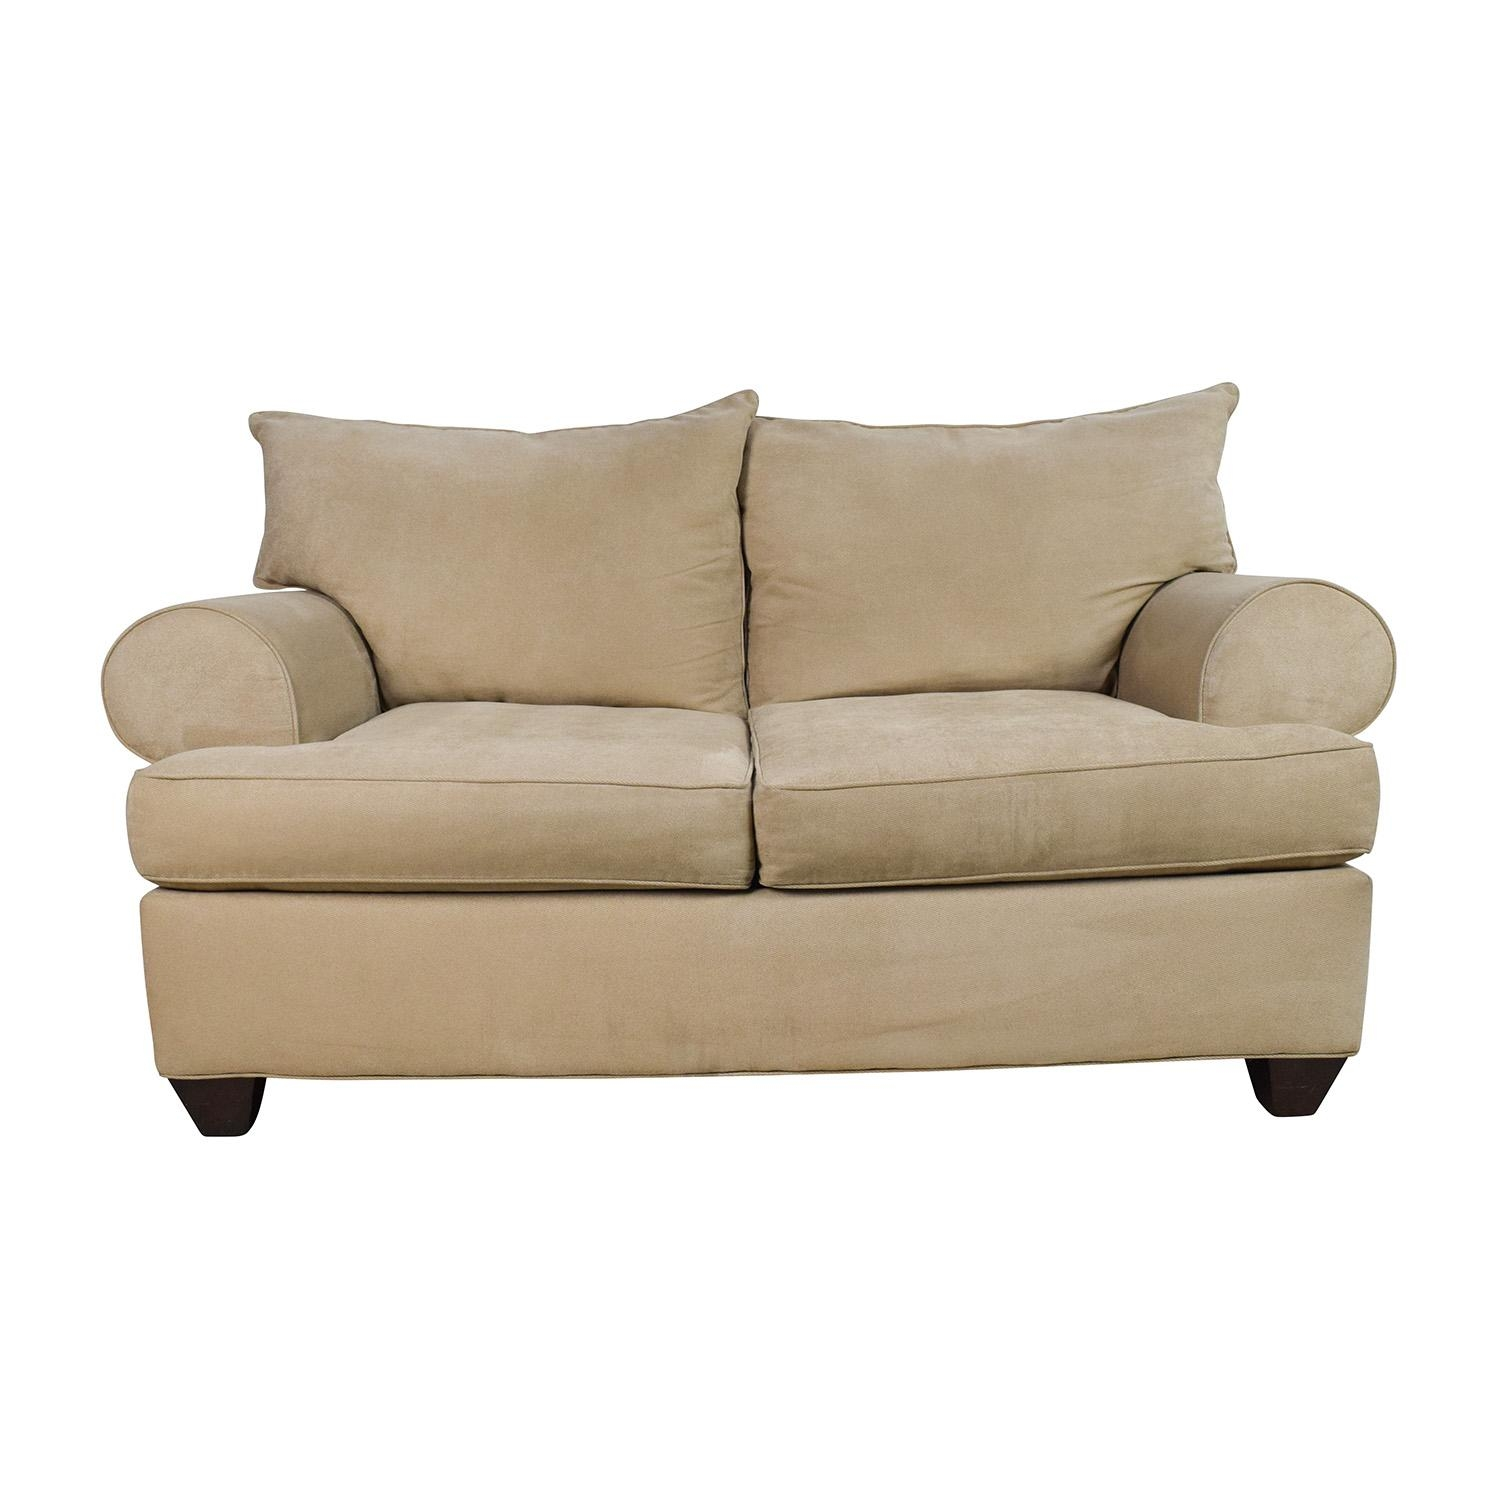 Off White Loveseat (View 7 of 20)